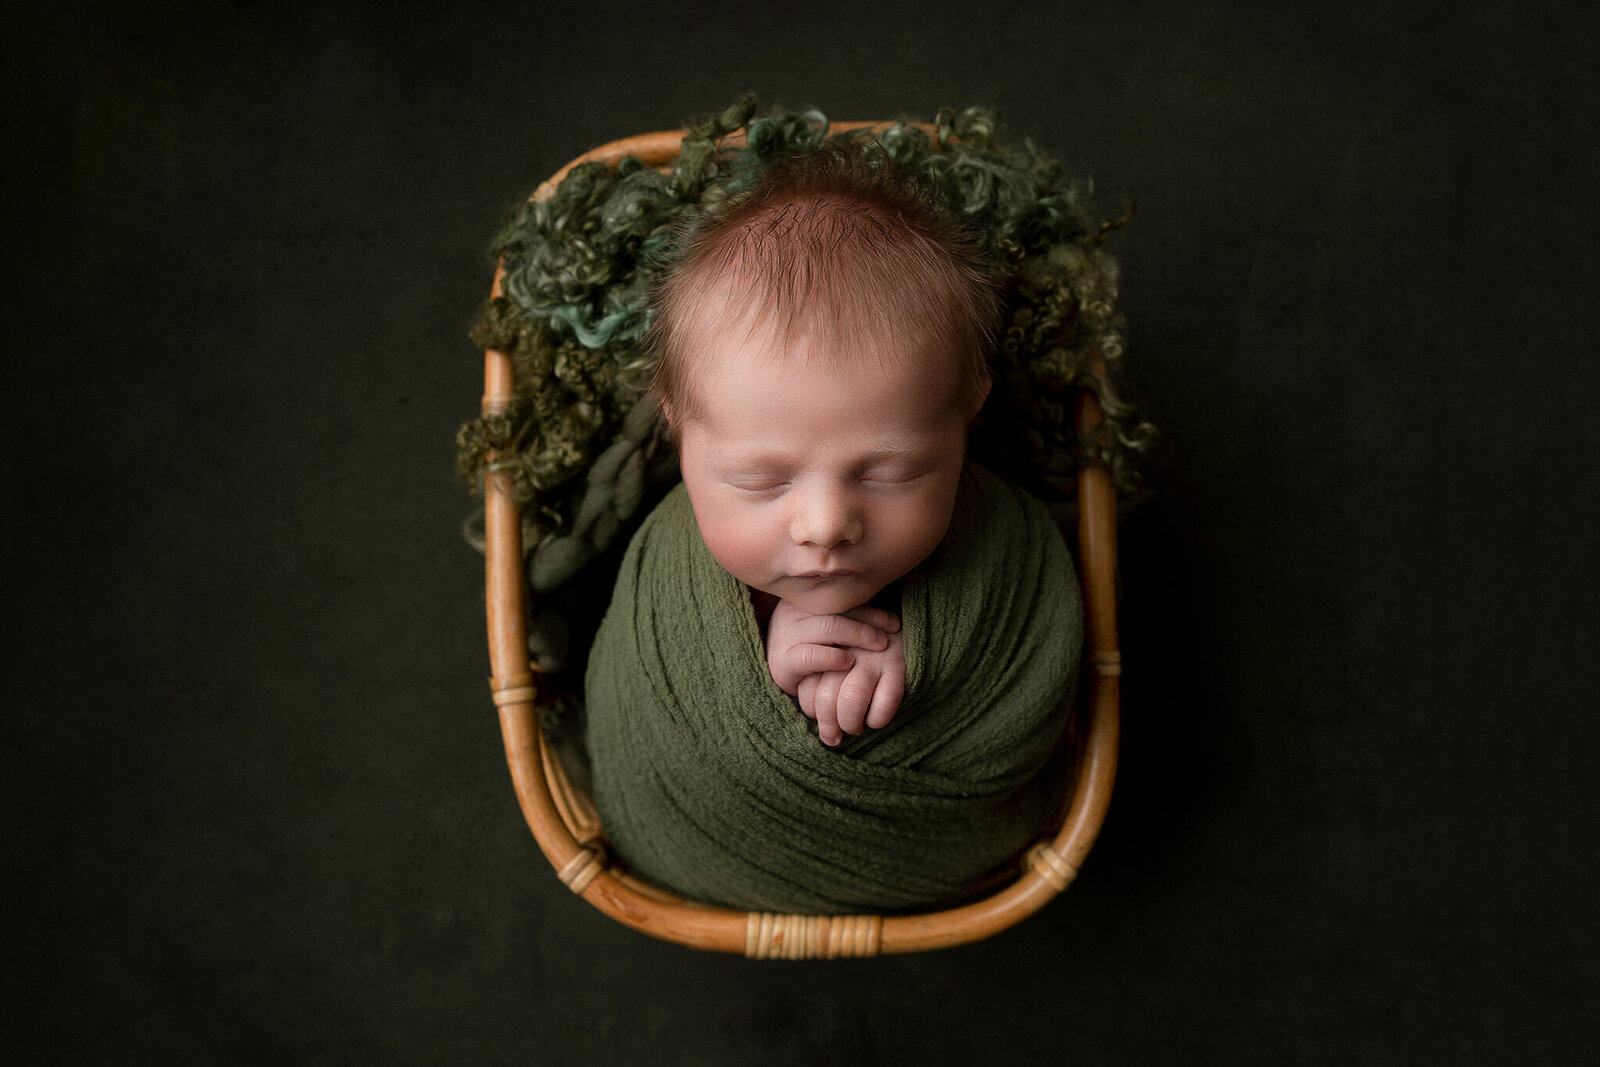 Lehi, Utah photographer, Lehi, Utah photography, Lehi newborn baby photography, Lehi, Utah baby photography, Lehi, Utah newborn studio, salt lake city newborn photography, salt lake city newborn photographer, salt lake city newborn baby photographer